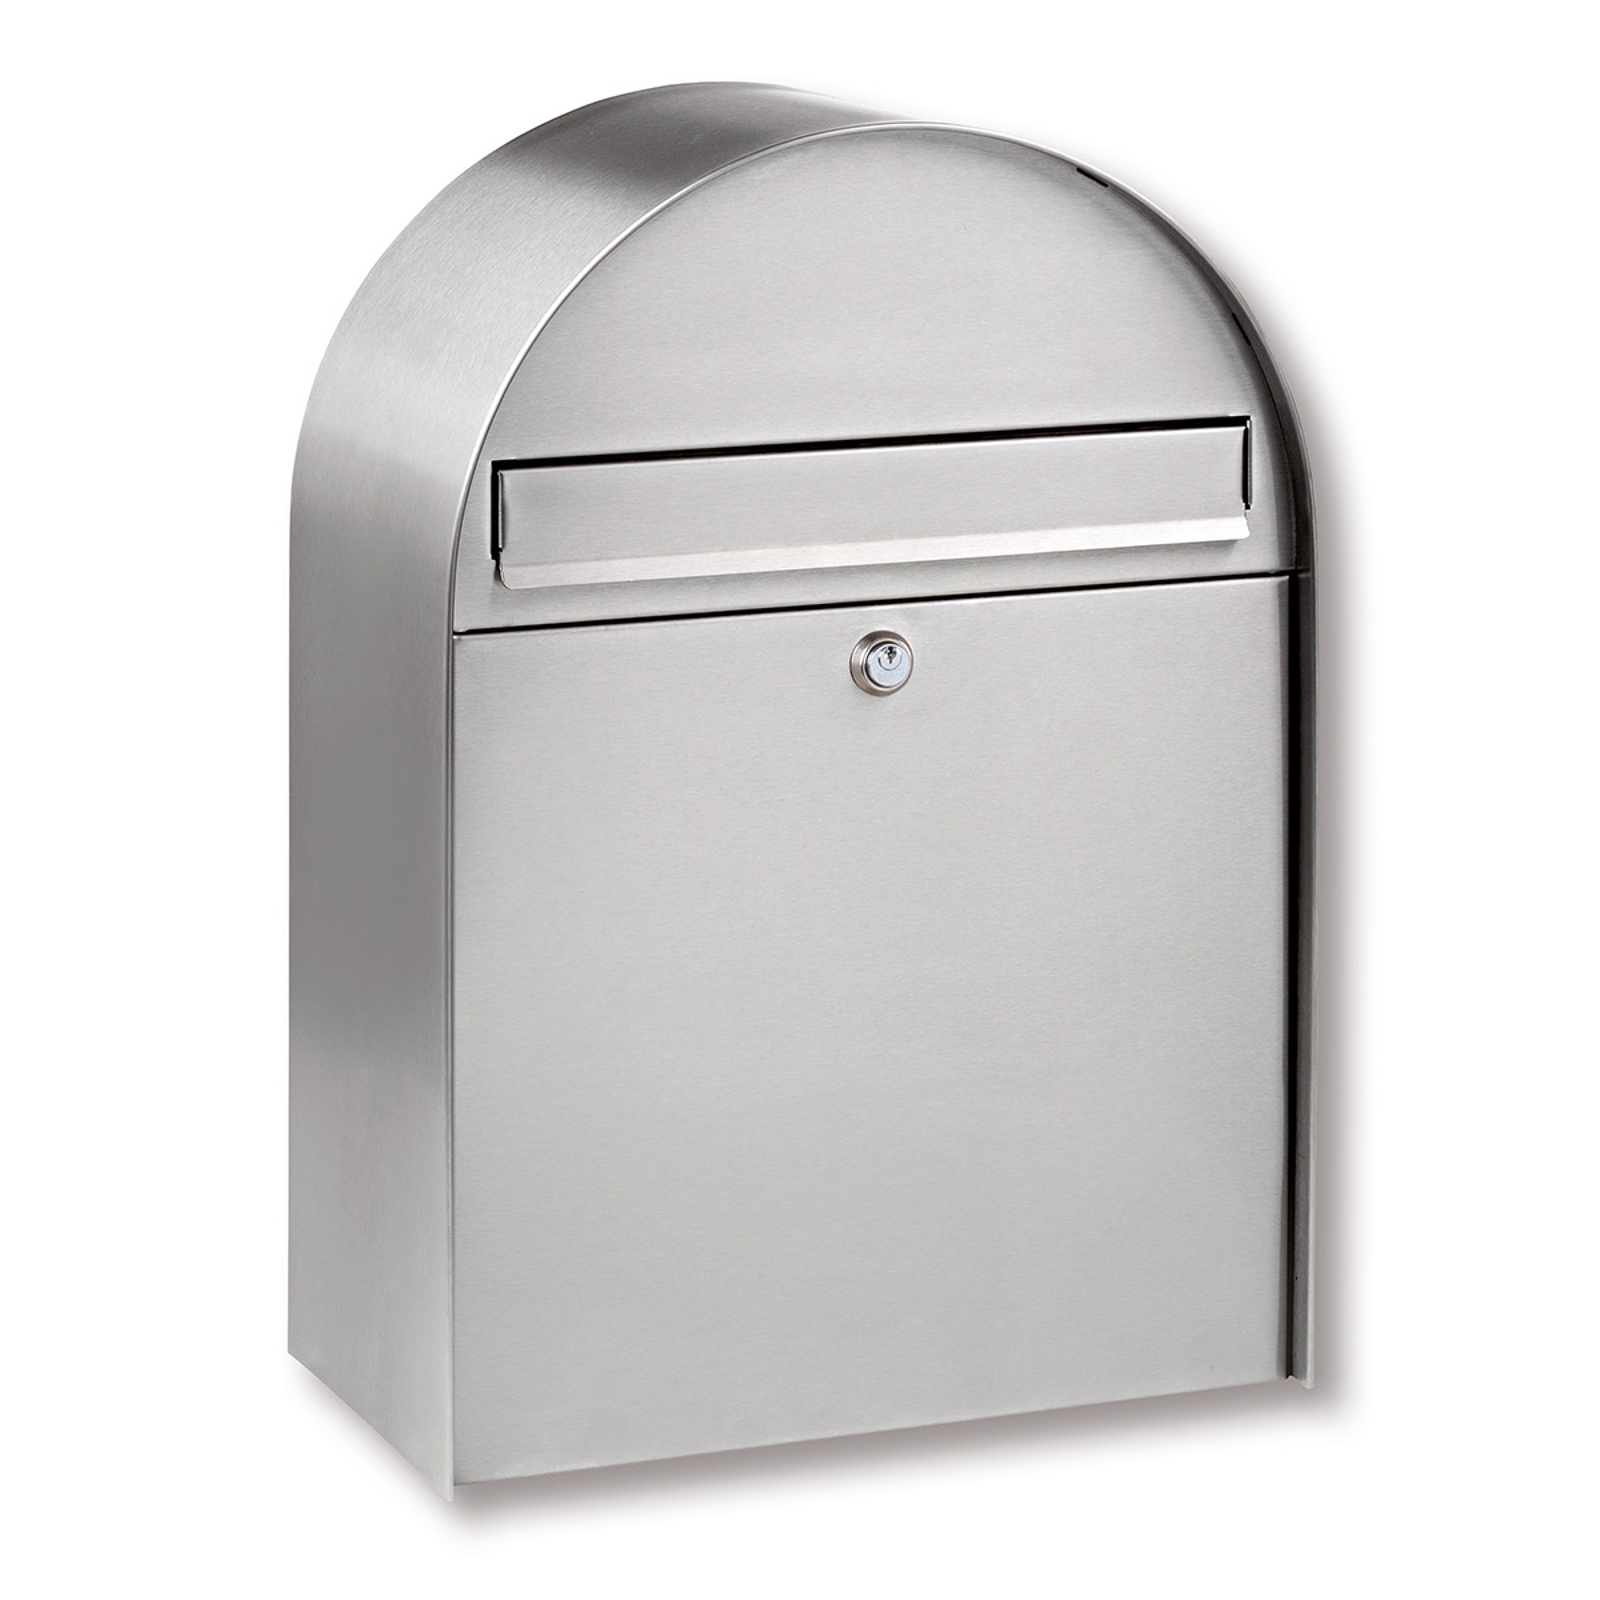 Nordic stainless steel letter box with curved form_1532134_1